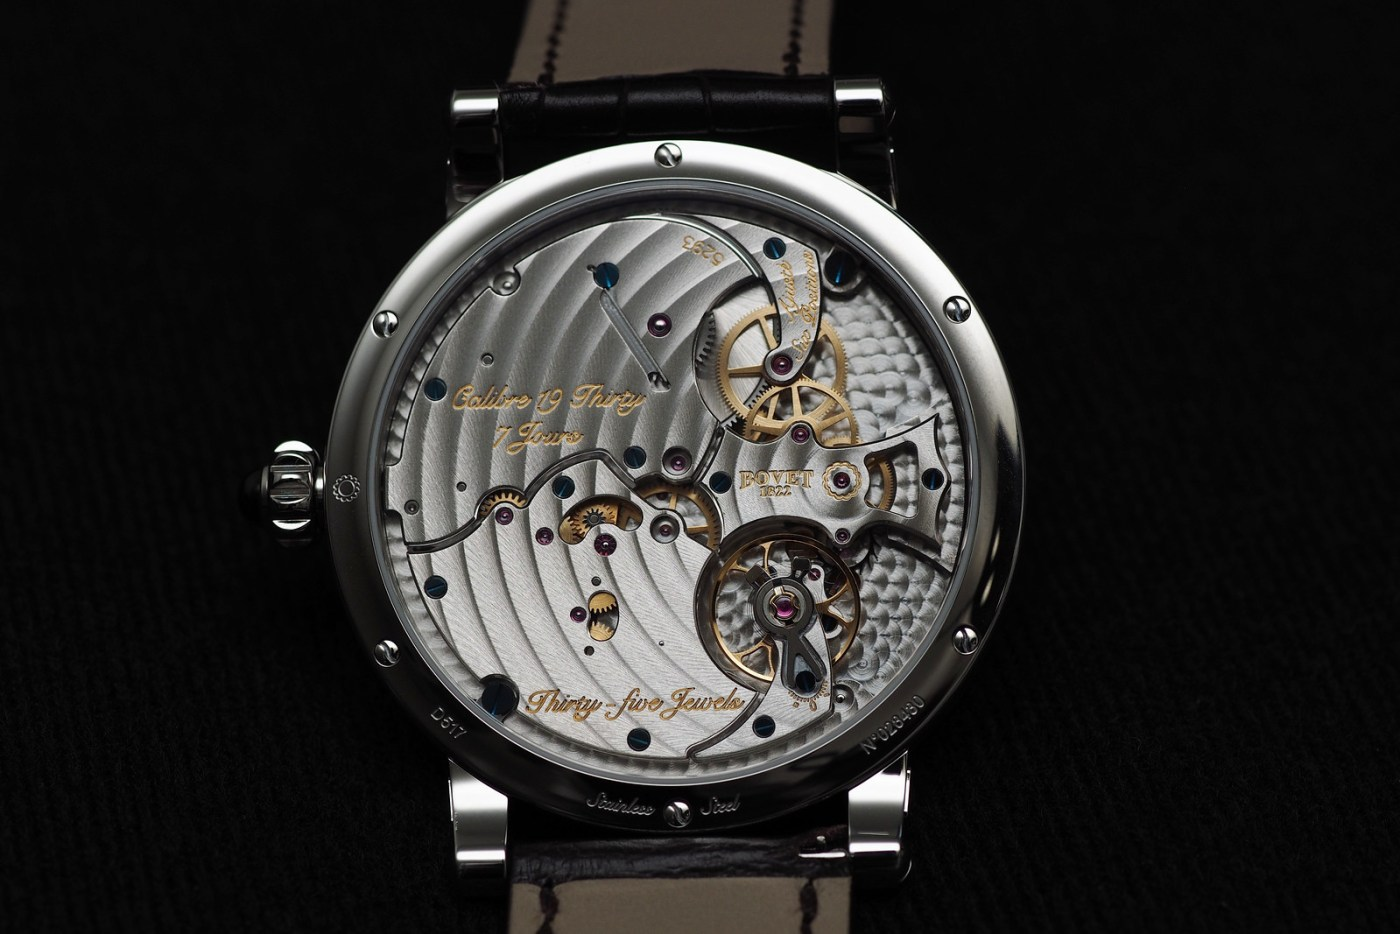 Bovet Dimier 19Thirty movement